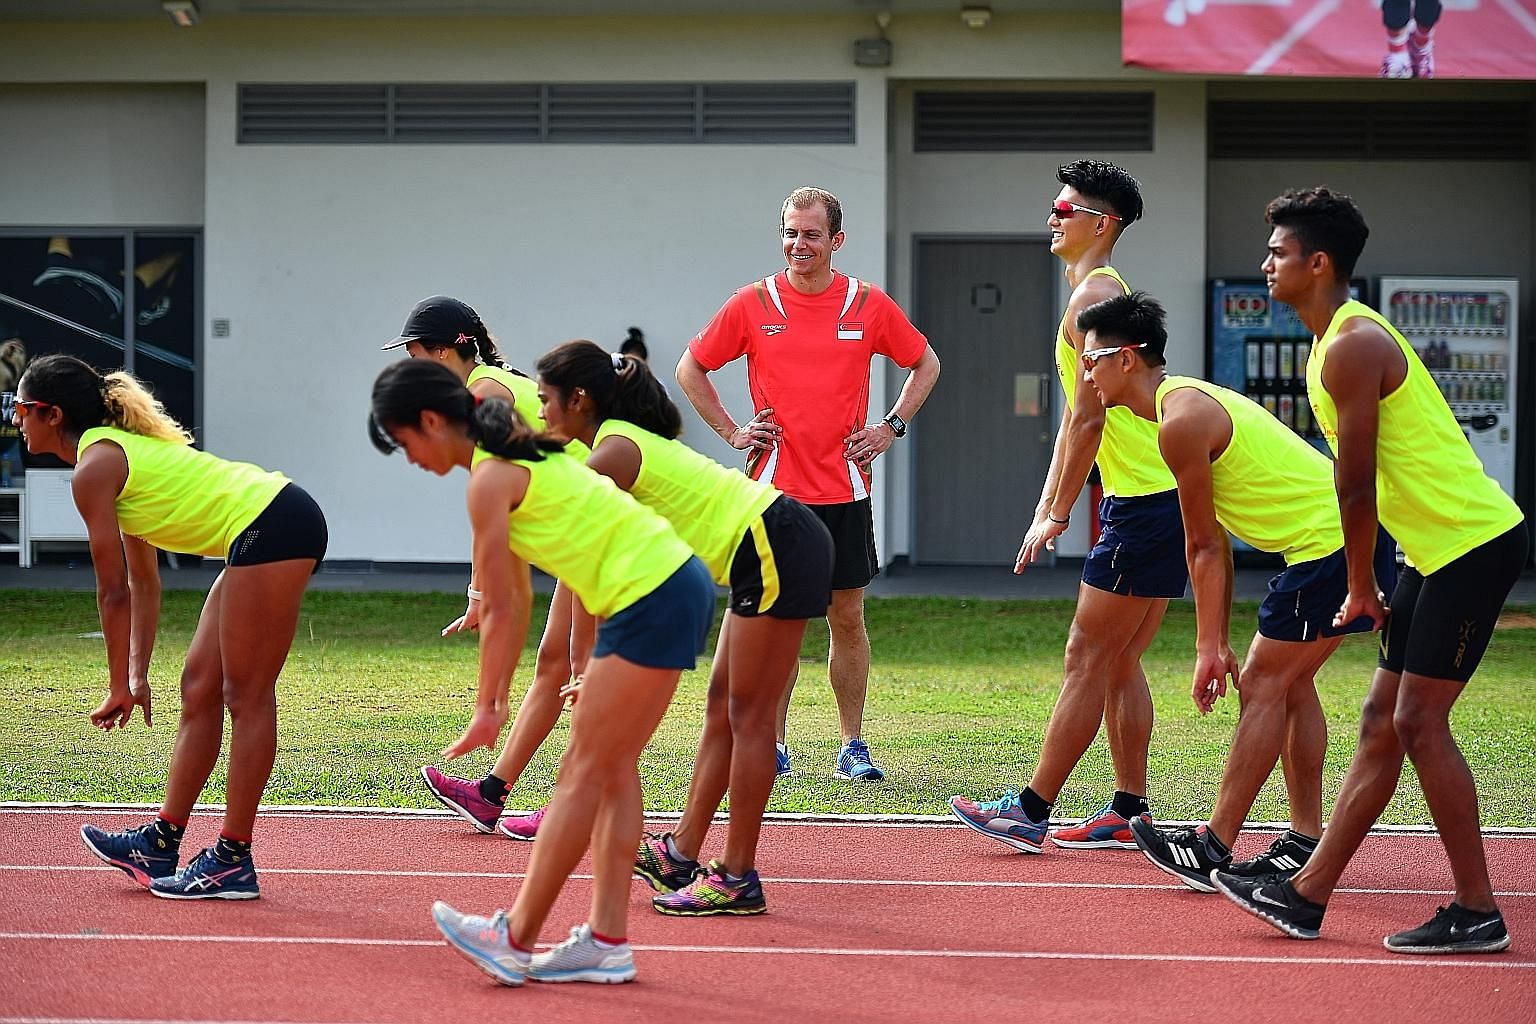 Volker Herrmann supervising national team training at the Kallang Practice Track on his first day at work on April 1. SA boss Ho Mun Cheong has called for him to be excluded from the team heading for the Asian Championships in India owing to recent d